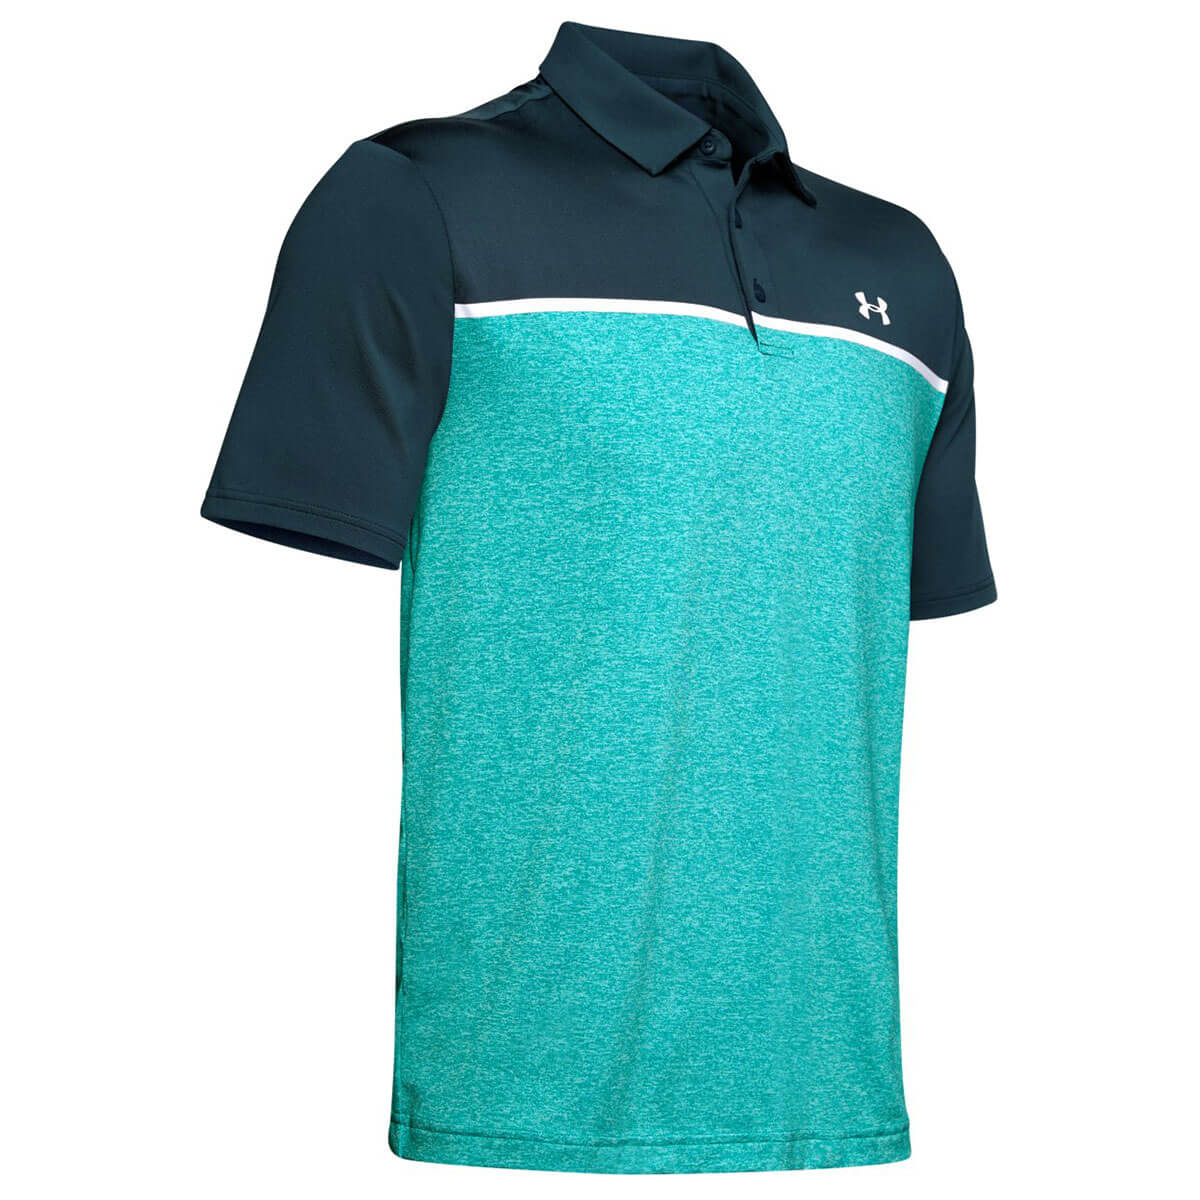 Under-Armour-Mens-2019-Playoff-Polo-2-0-Breathable-Light-Stretch-Polo-Shirt thumbnail 114